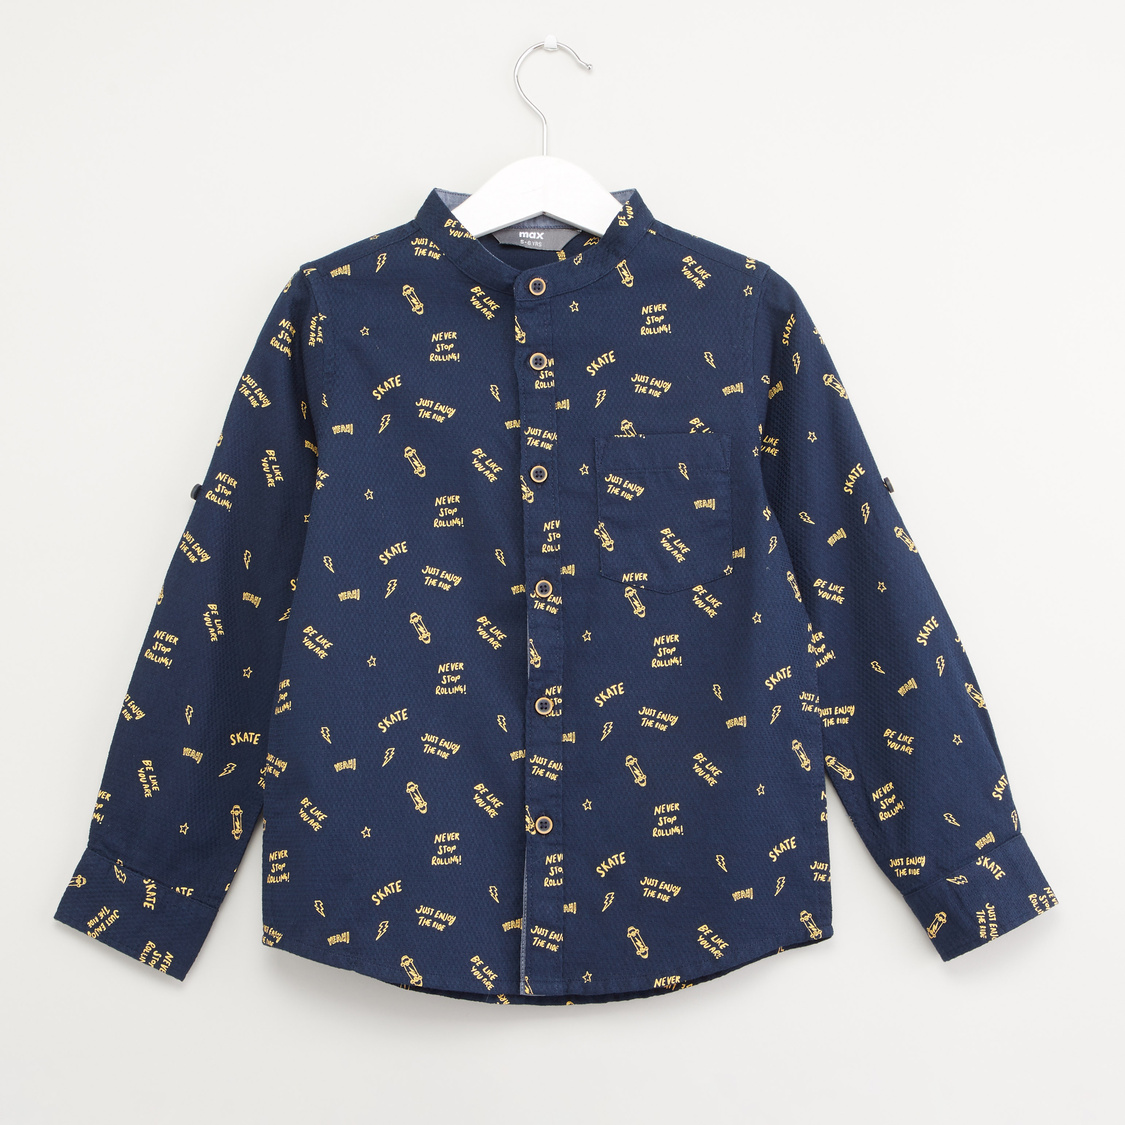 Typographic Print Shirt with Spread Collar and Long Sleeves